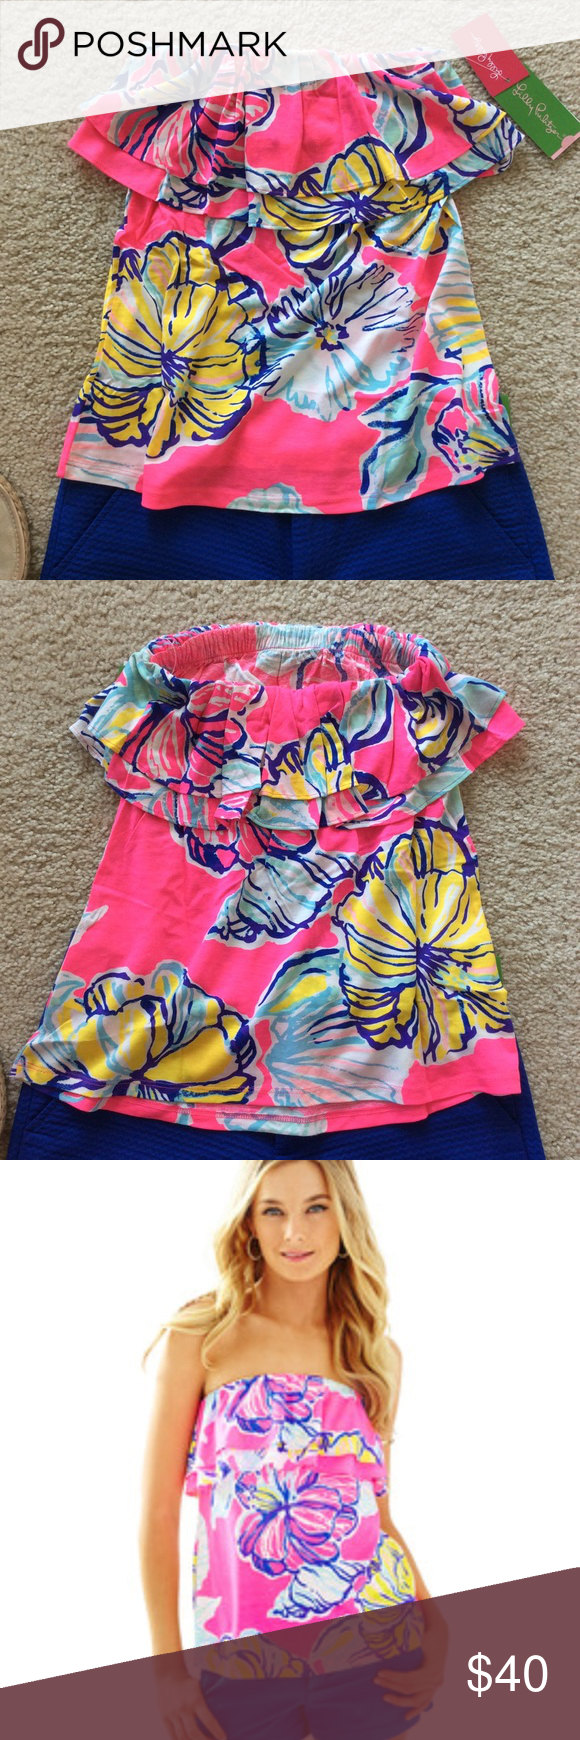 """Lilly Pulitzer Rilo Tube Lilly Pulitzer Rilo Tube Top 'Swept By The Tides'. A summertime staple💜. Bright, fun print. Double flounce tube top. Laying flat approx 18"""" long, approx 11"""" unstretched. There is an elastic band at the top. Can stretch to approx 14.5"""" across. 50 cotton 50 modal. Size XS. NWT, never worn. #766 Lilly Pulitzer Tops"""